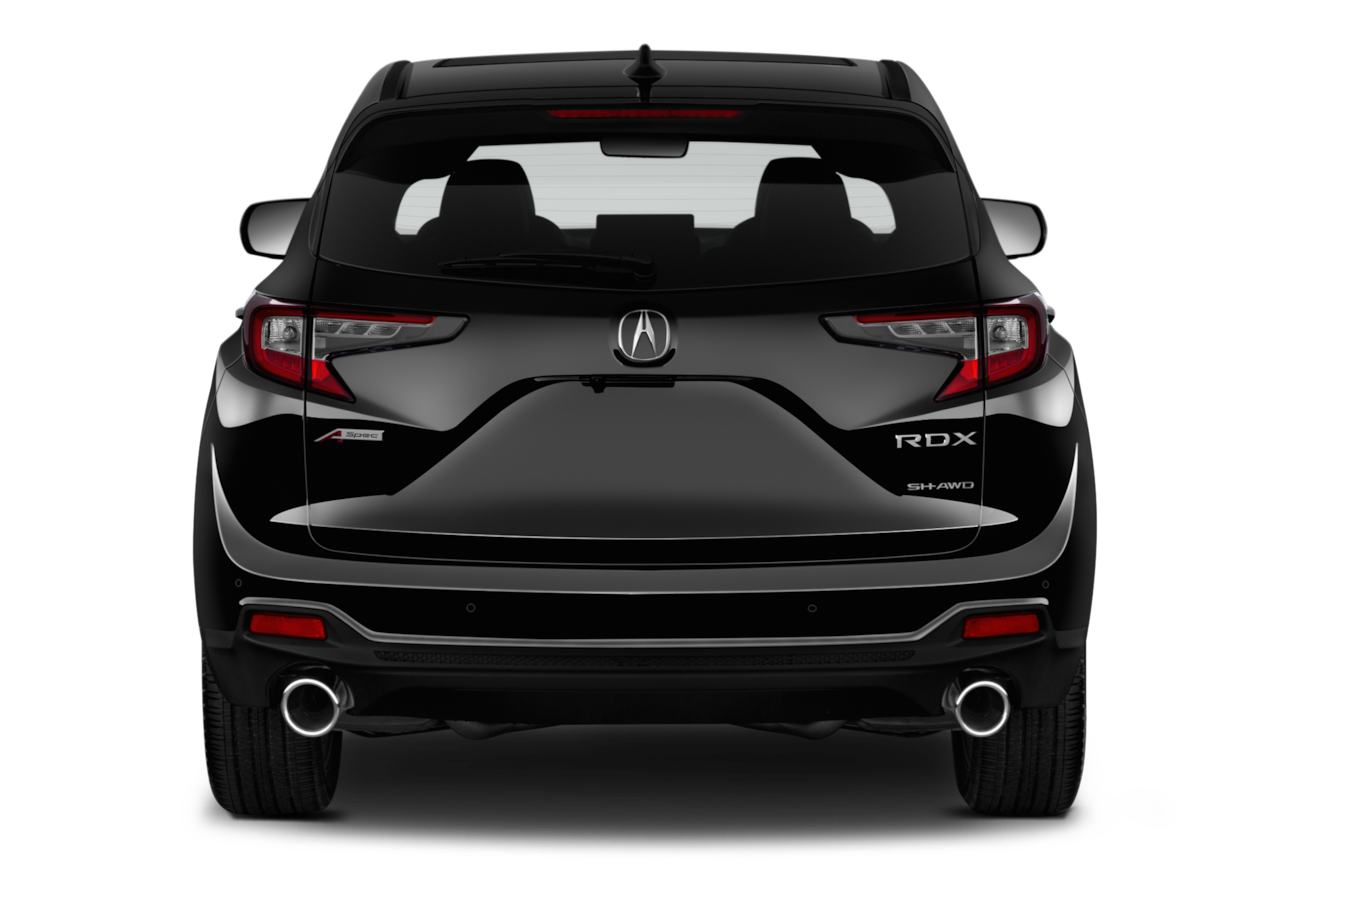 50 Best Review 2019 Acura Rdx Gunmetal Metallic Review And Specs New Concept for 2019 Acura Rdx Gunmetal Metallic Review And Specs